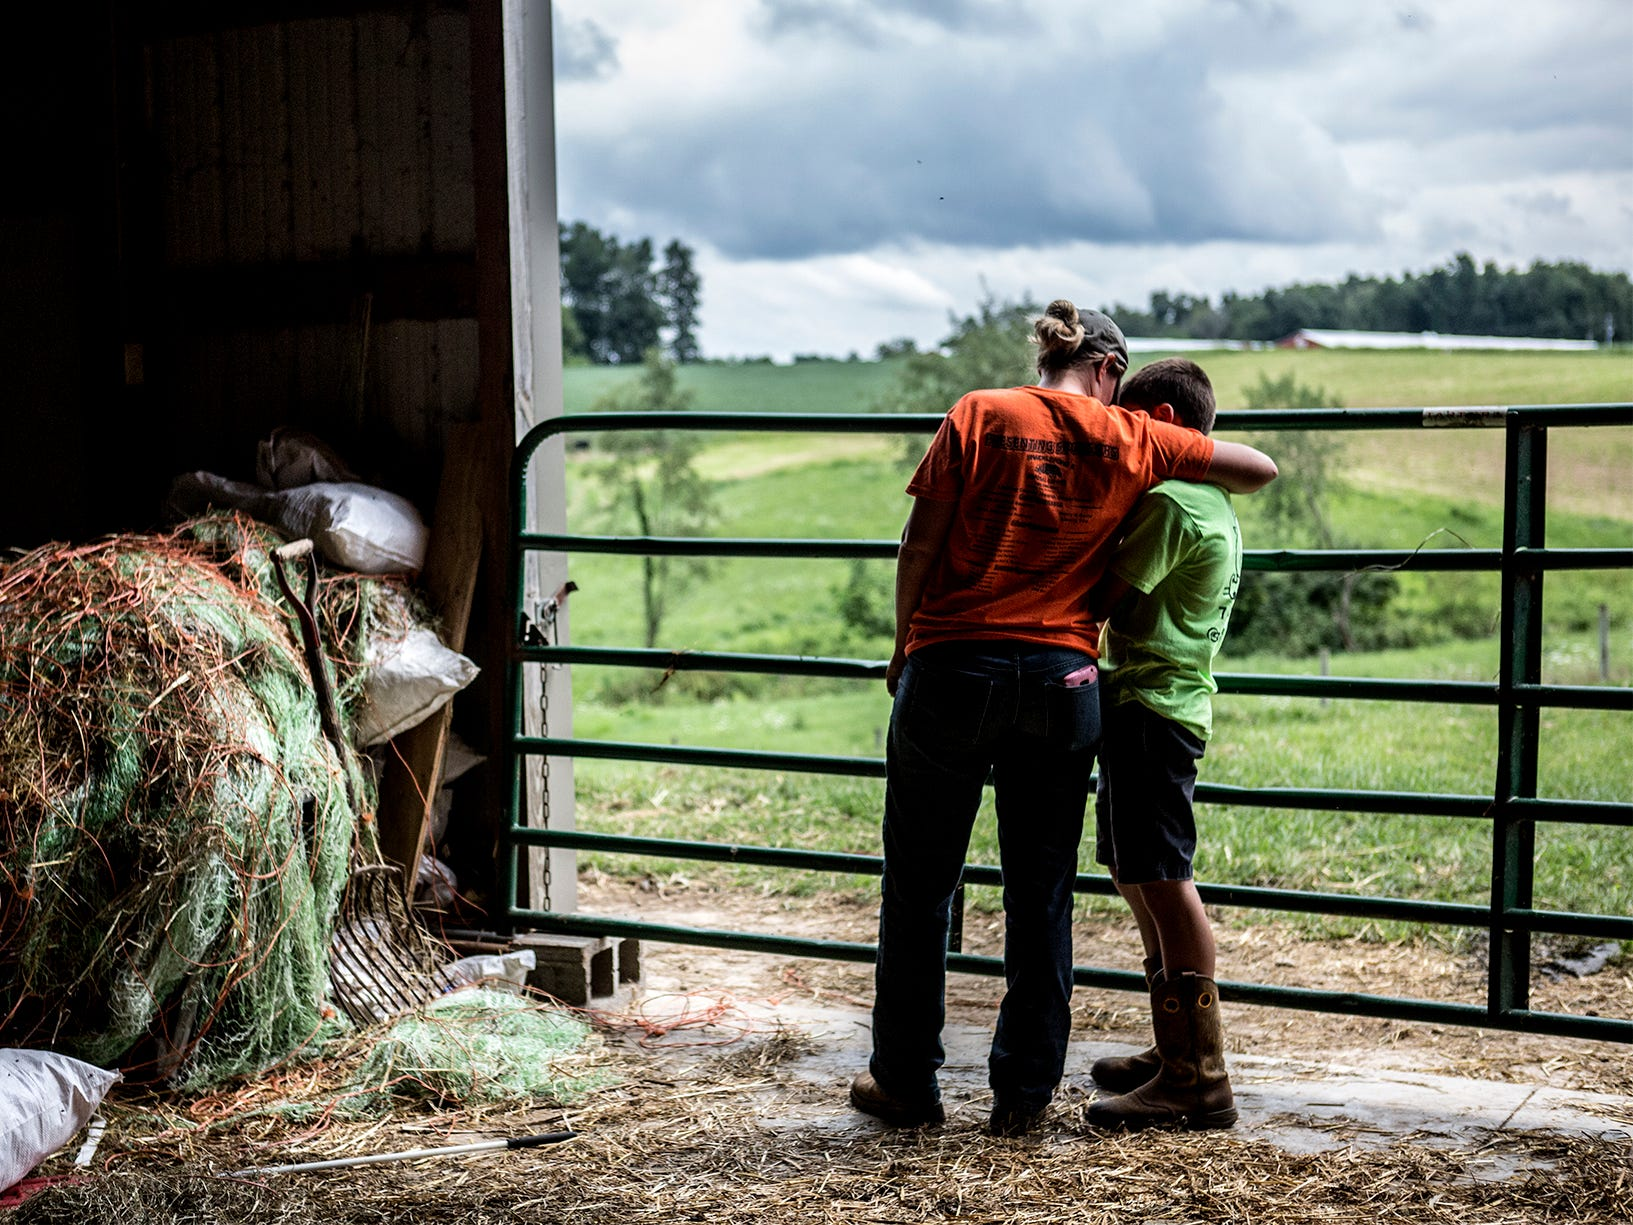 Mamie pulls her oldest son, Arthur aside to talk to him. Arthur had been playing around in the barn instead of getting his chores done and taking care of his cows for 4H.